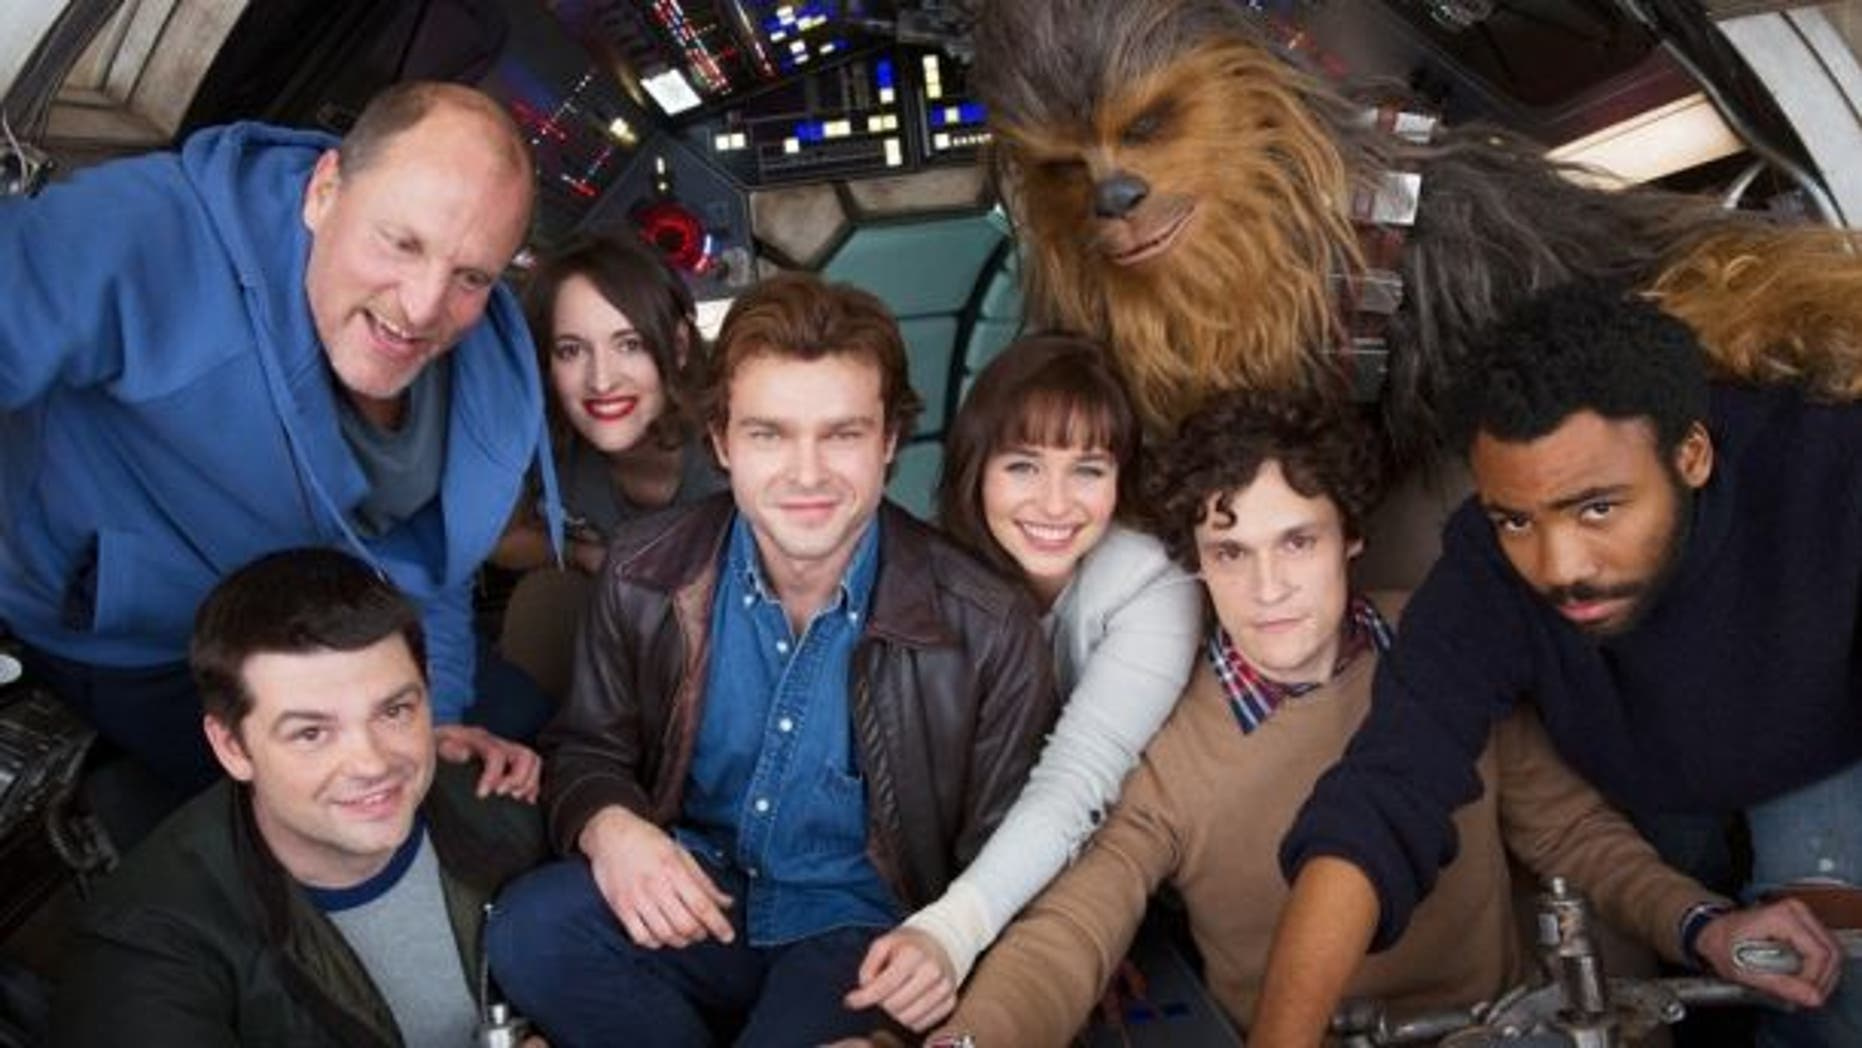 """Han Solo"" cast with Alden Ehrenreich in the brown jacket."